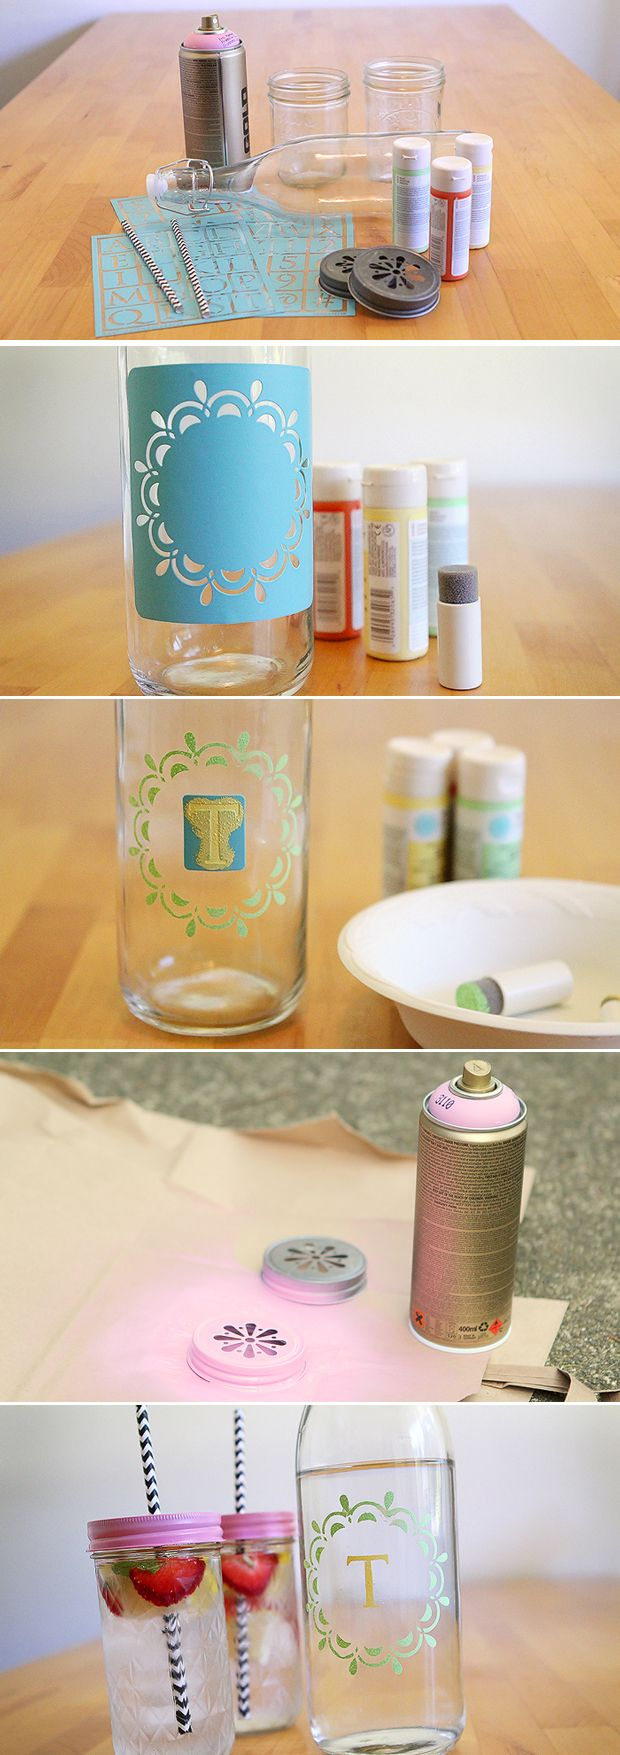 DIY gift for Mother's Day/birthday/christmas. Doing it, I love this idea so much!!